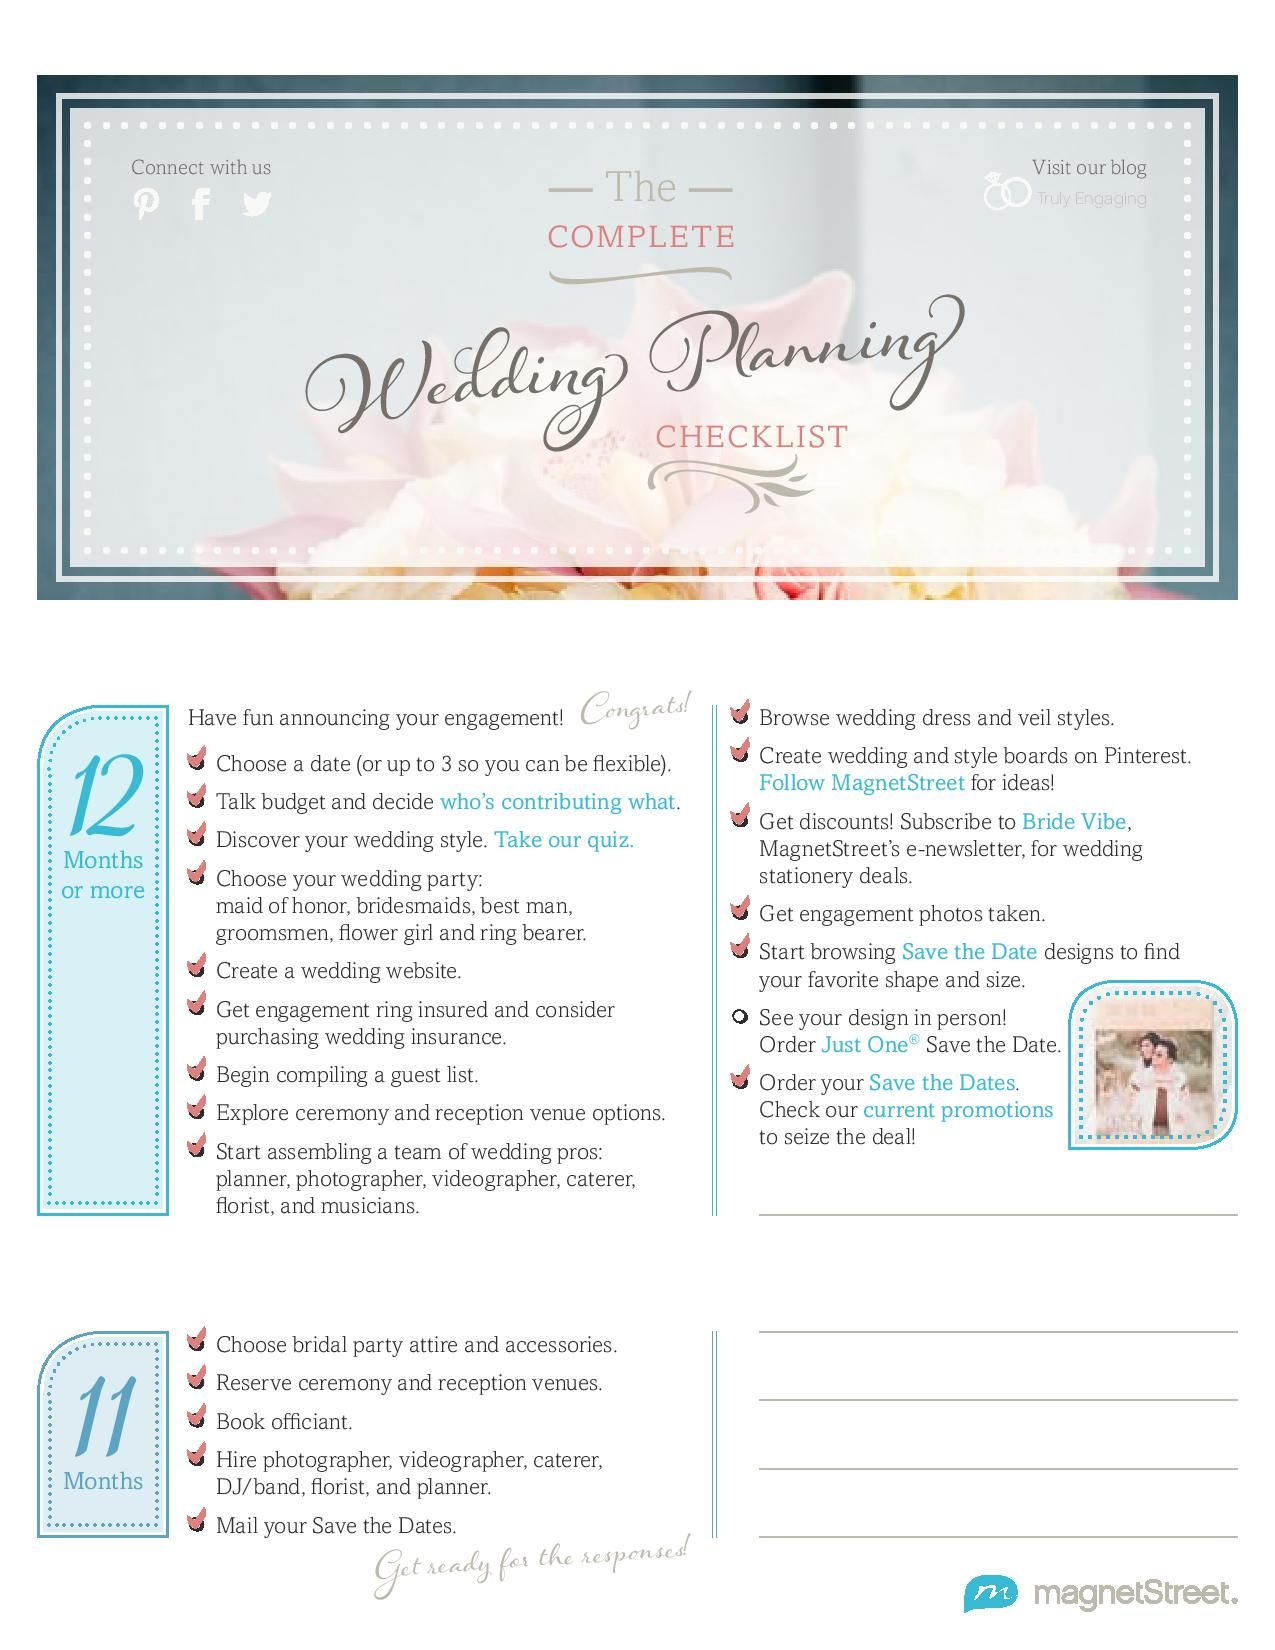 The Complete Wedding Planning Checklist Wedding Planning Checklist Complete Wedding Planning Checklist Wedding Beauty Checklist